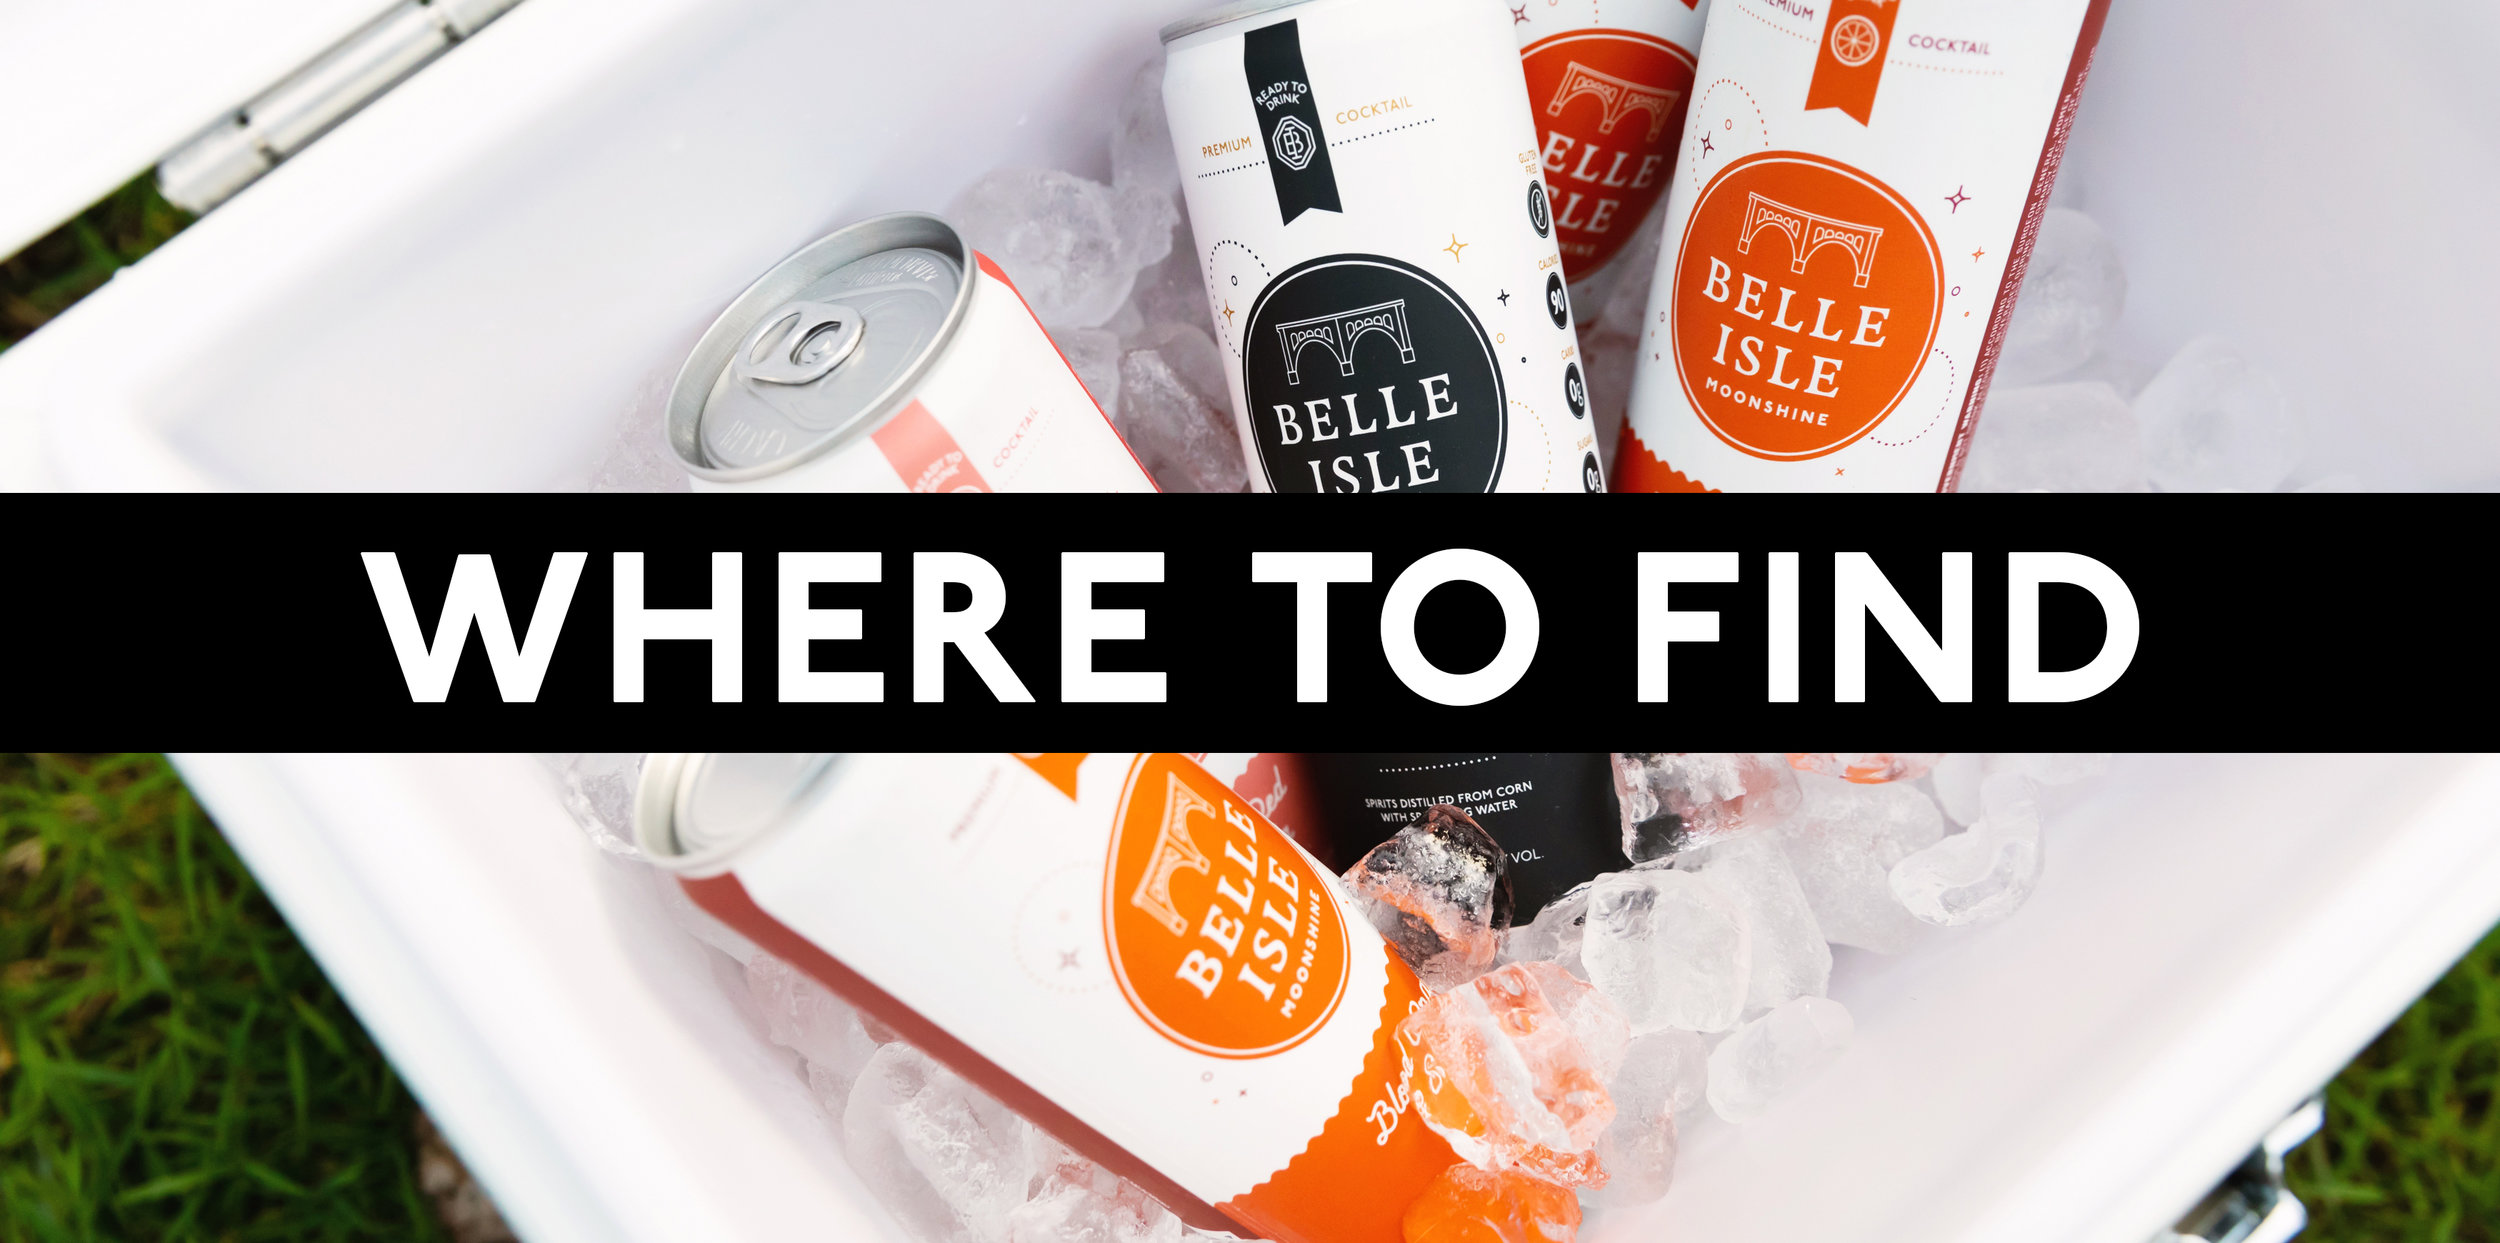 where-to-find-canned-cocktail-banner2.jpg